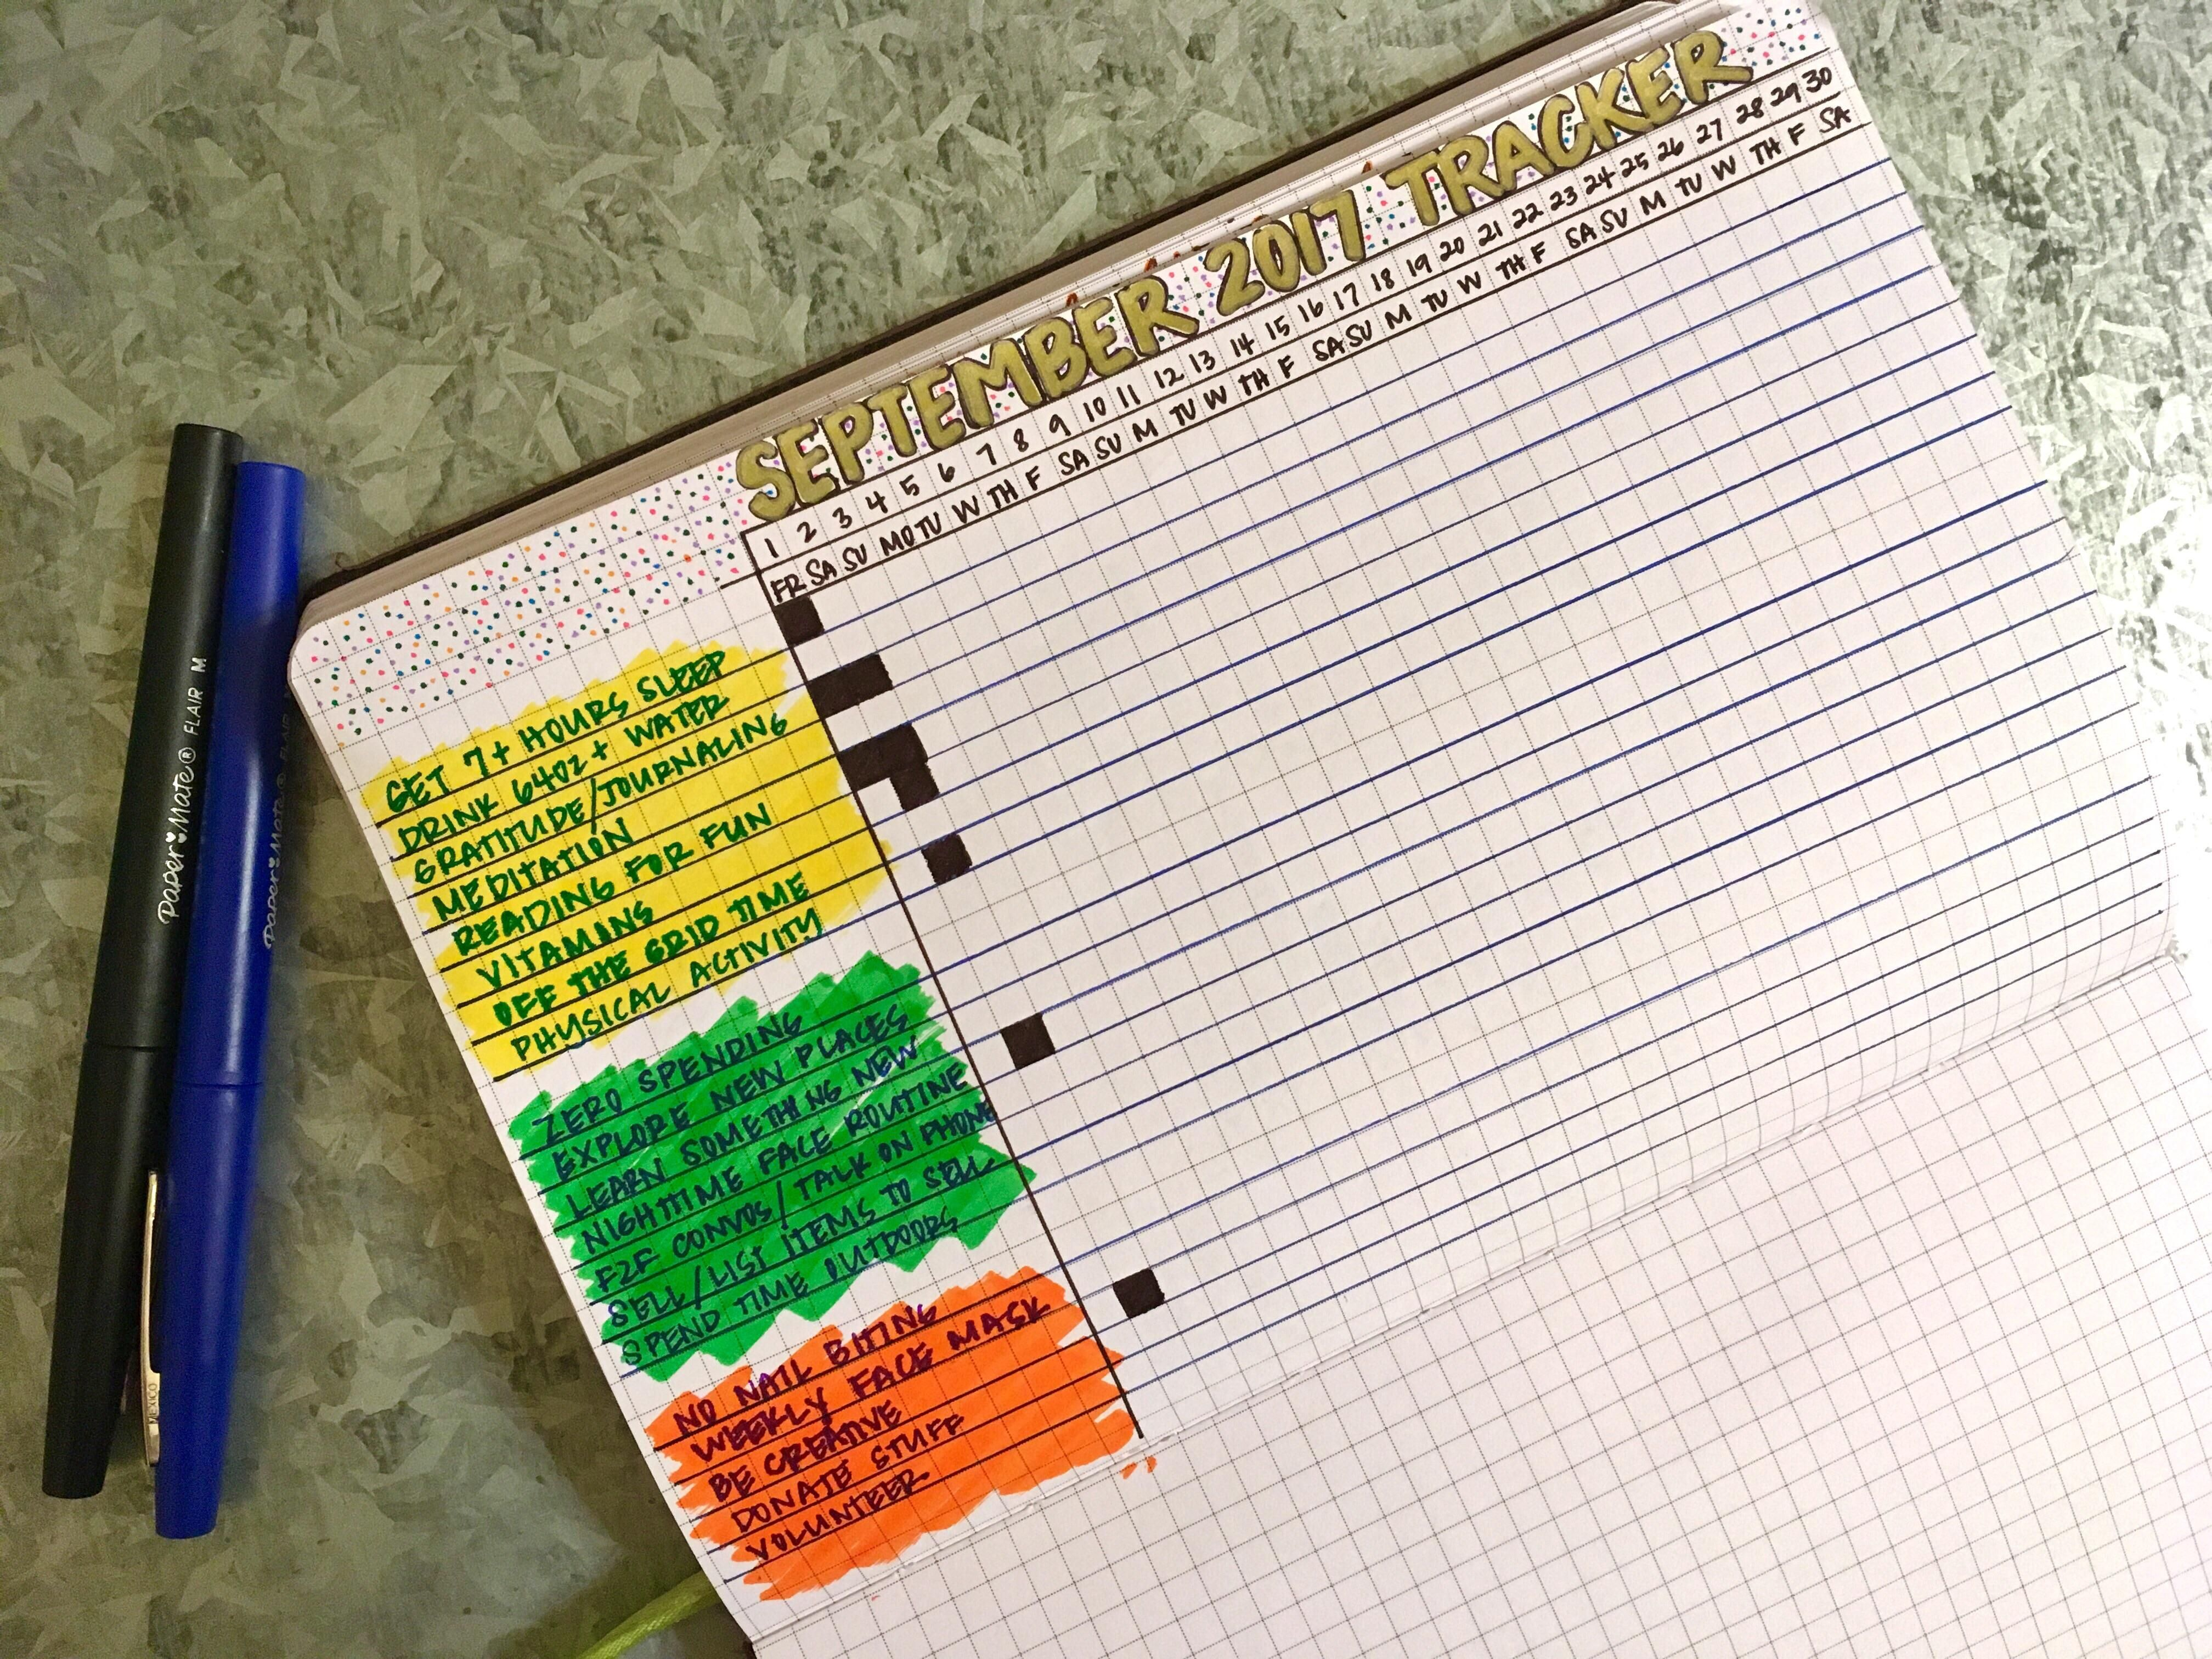 20 points and 1 comments so far on reddit bullet journal